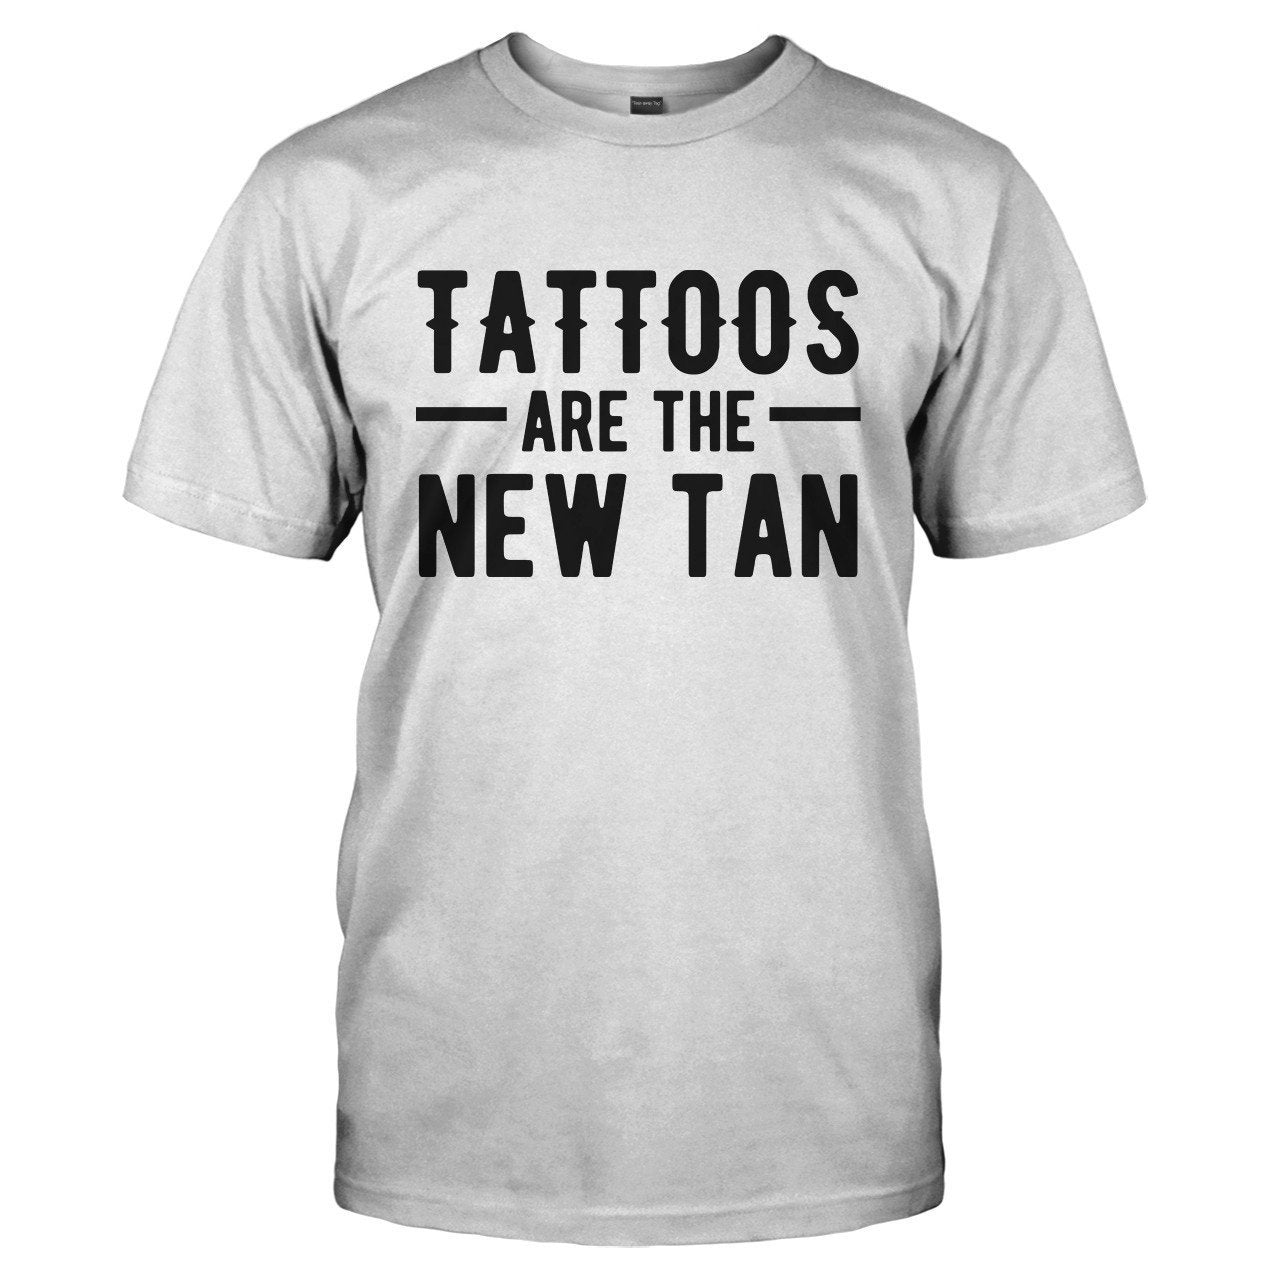 Tattoos Are The New Tan - T Shirt